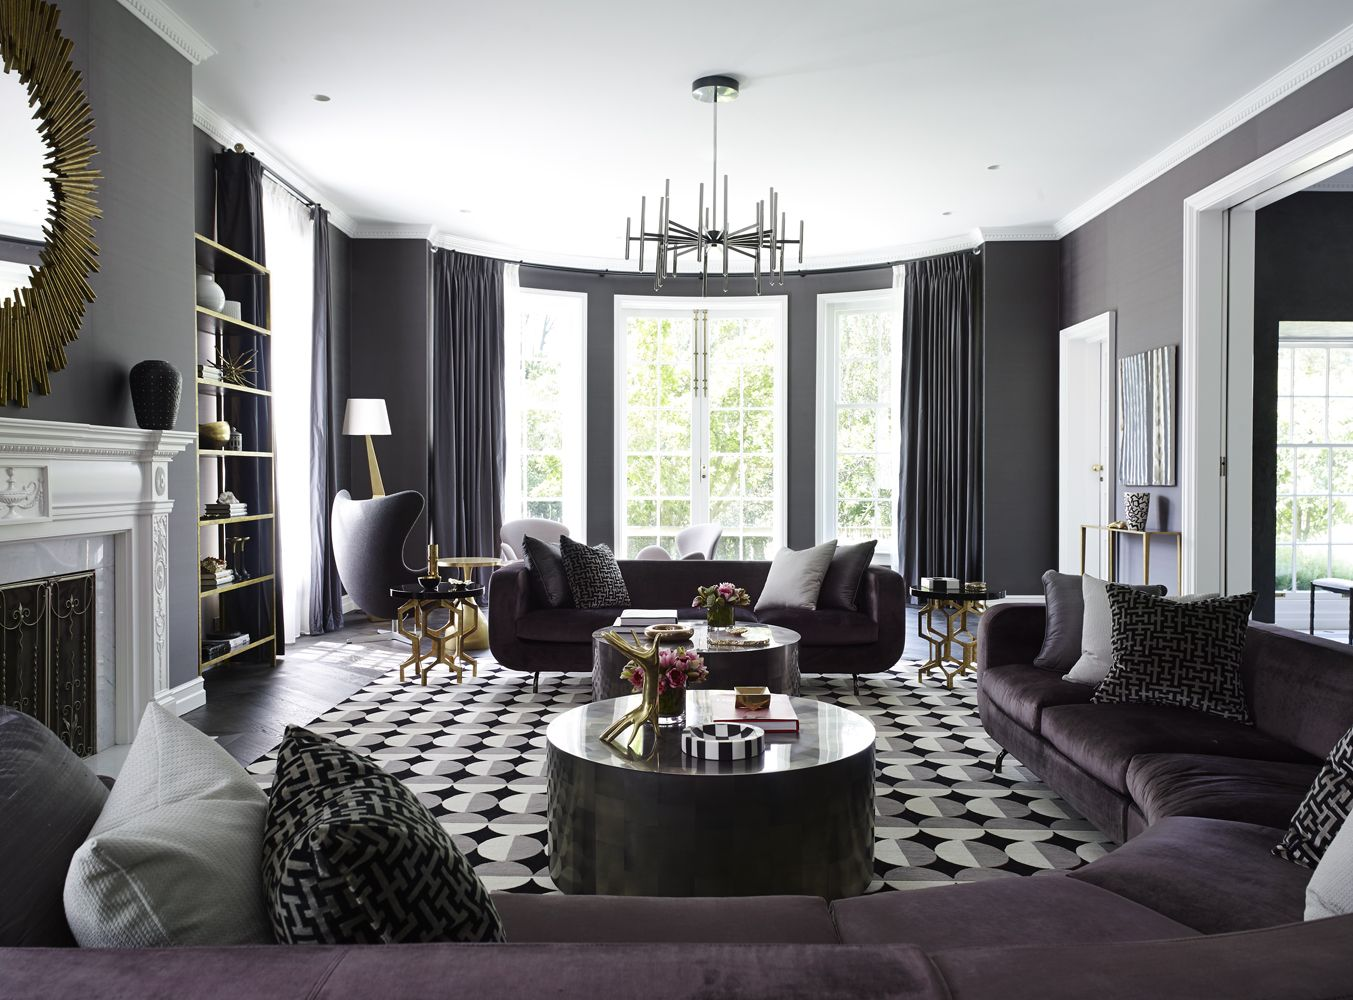 976 best Living rooms images on Pinterest | Living rooms, Living ...